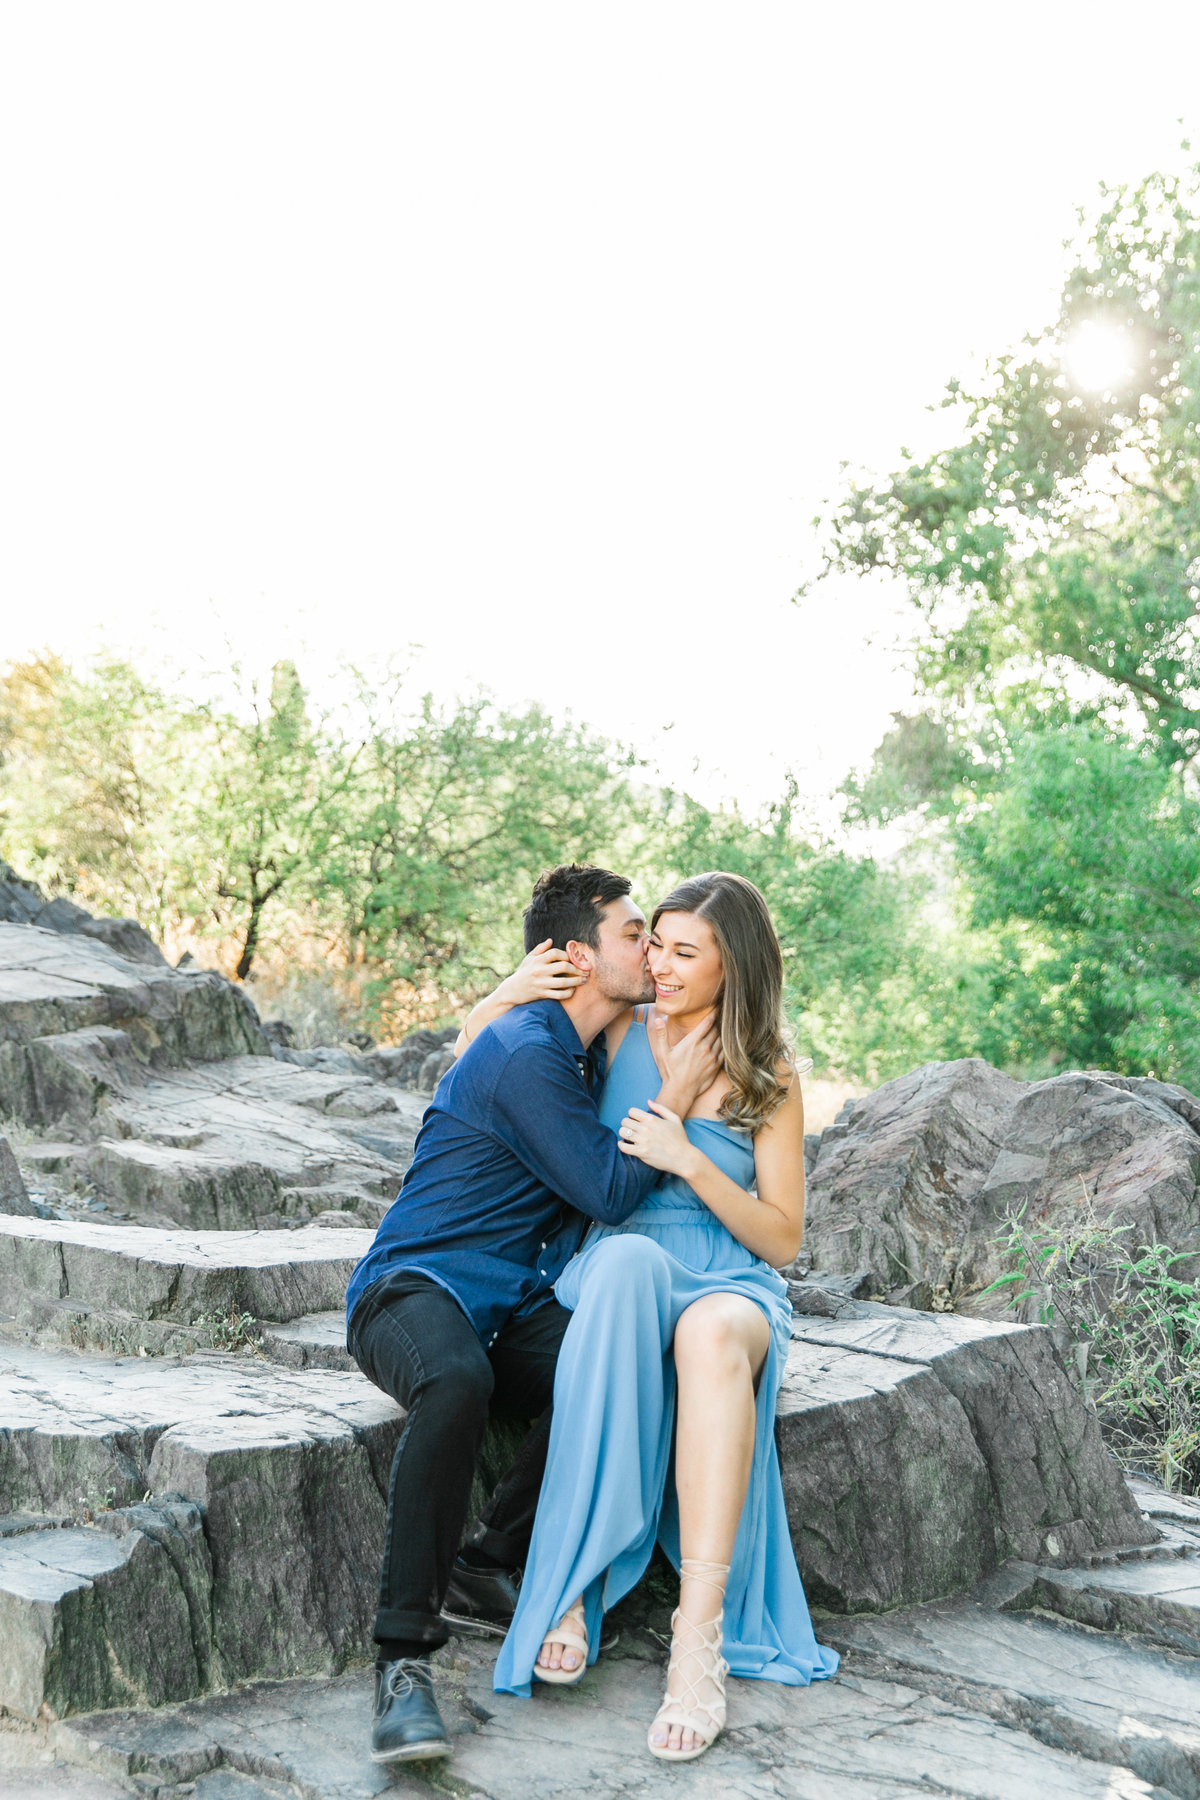 Karlie Colleen Photography - Arizona Desert Engagement - Brynne & Josh -32